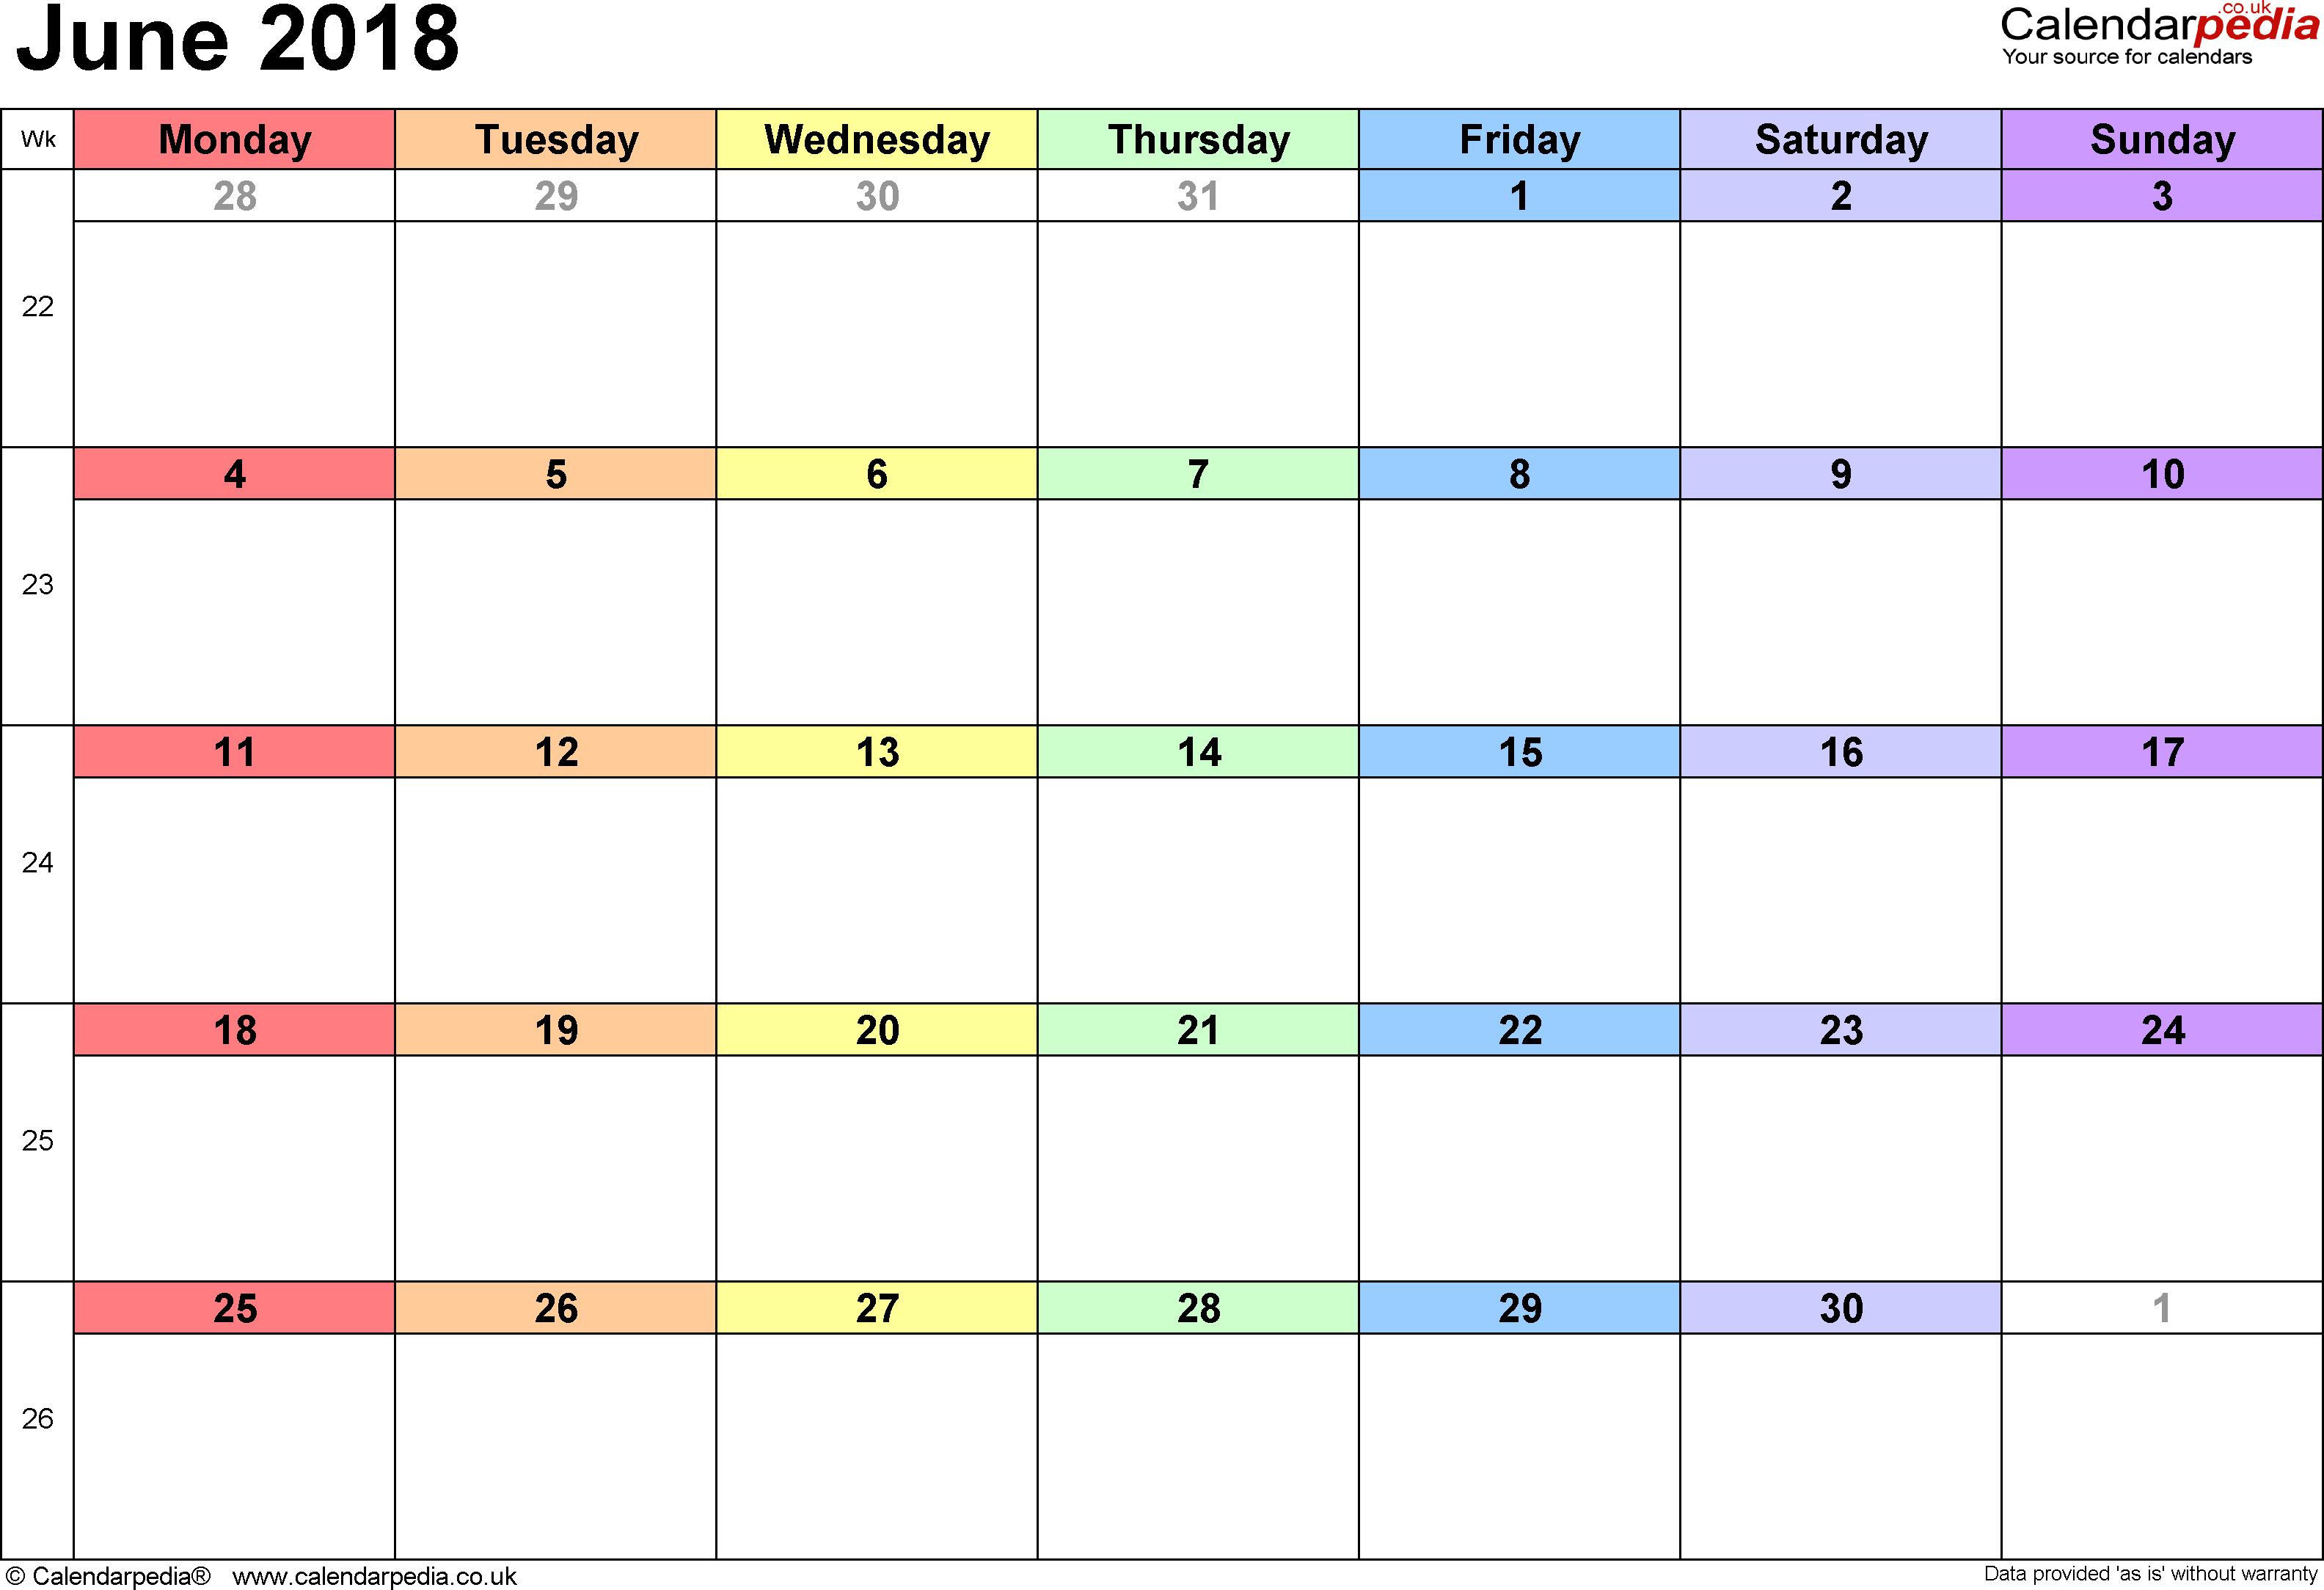 Calendar June 2018, landscape orientation, 1 page, with UK bank holidays and week numbers